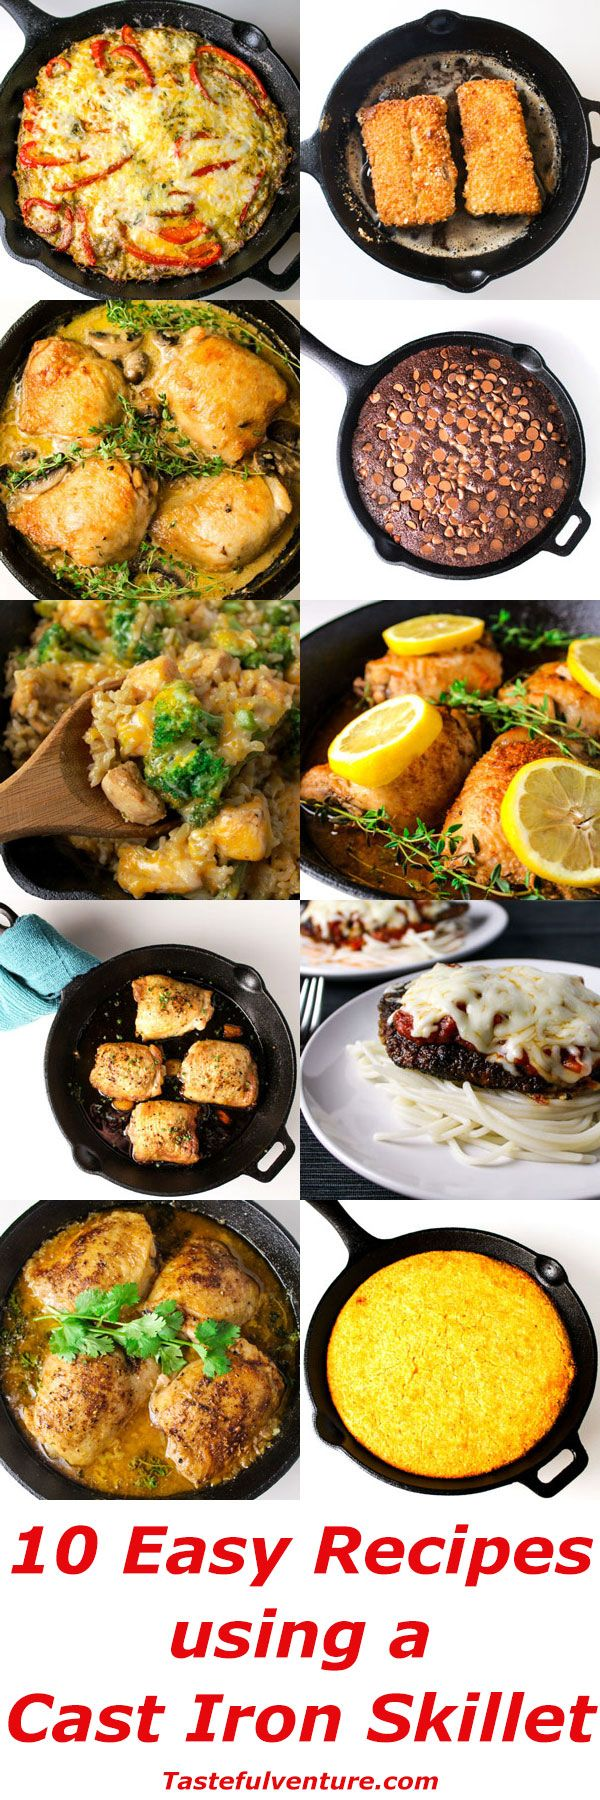 10 Easy Recipes Using A Cast Iron Skillet, including Red Pepper and Sausage Frittata, Macadamia Crusted Mahi Mahi, Chicken Thighs Marsala, Easy Skillet Brownies, Chipotle Chicken Cheesy Broccoli and Rice, Lemon and Paprika Chicken Thighs, Garlic and Brown Sugar Chicken Thighs, Parmesan Chicken, Cilantro Lime Chicken Thighs, and Cornbread. | Tastefulventure.com